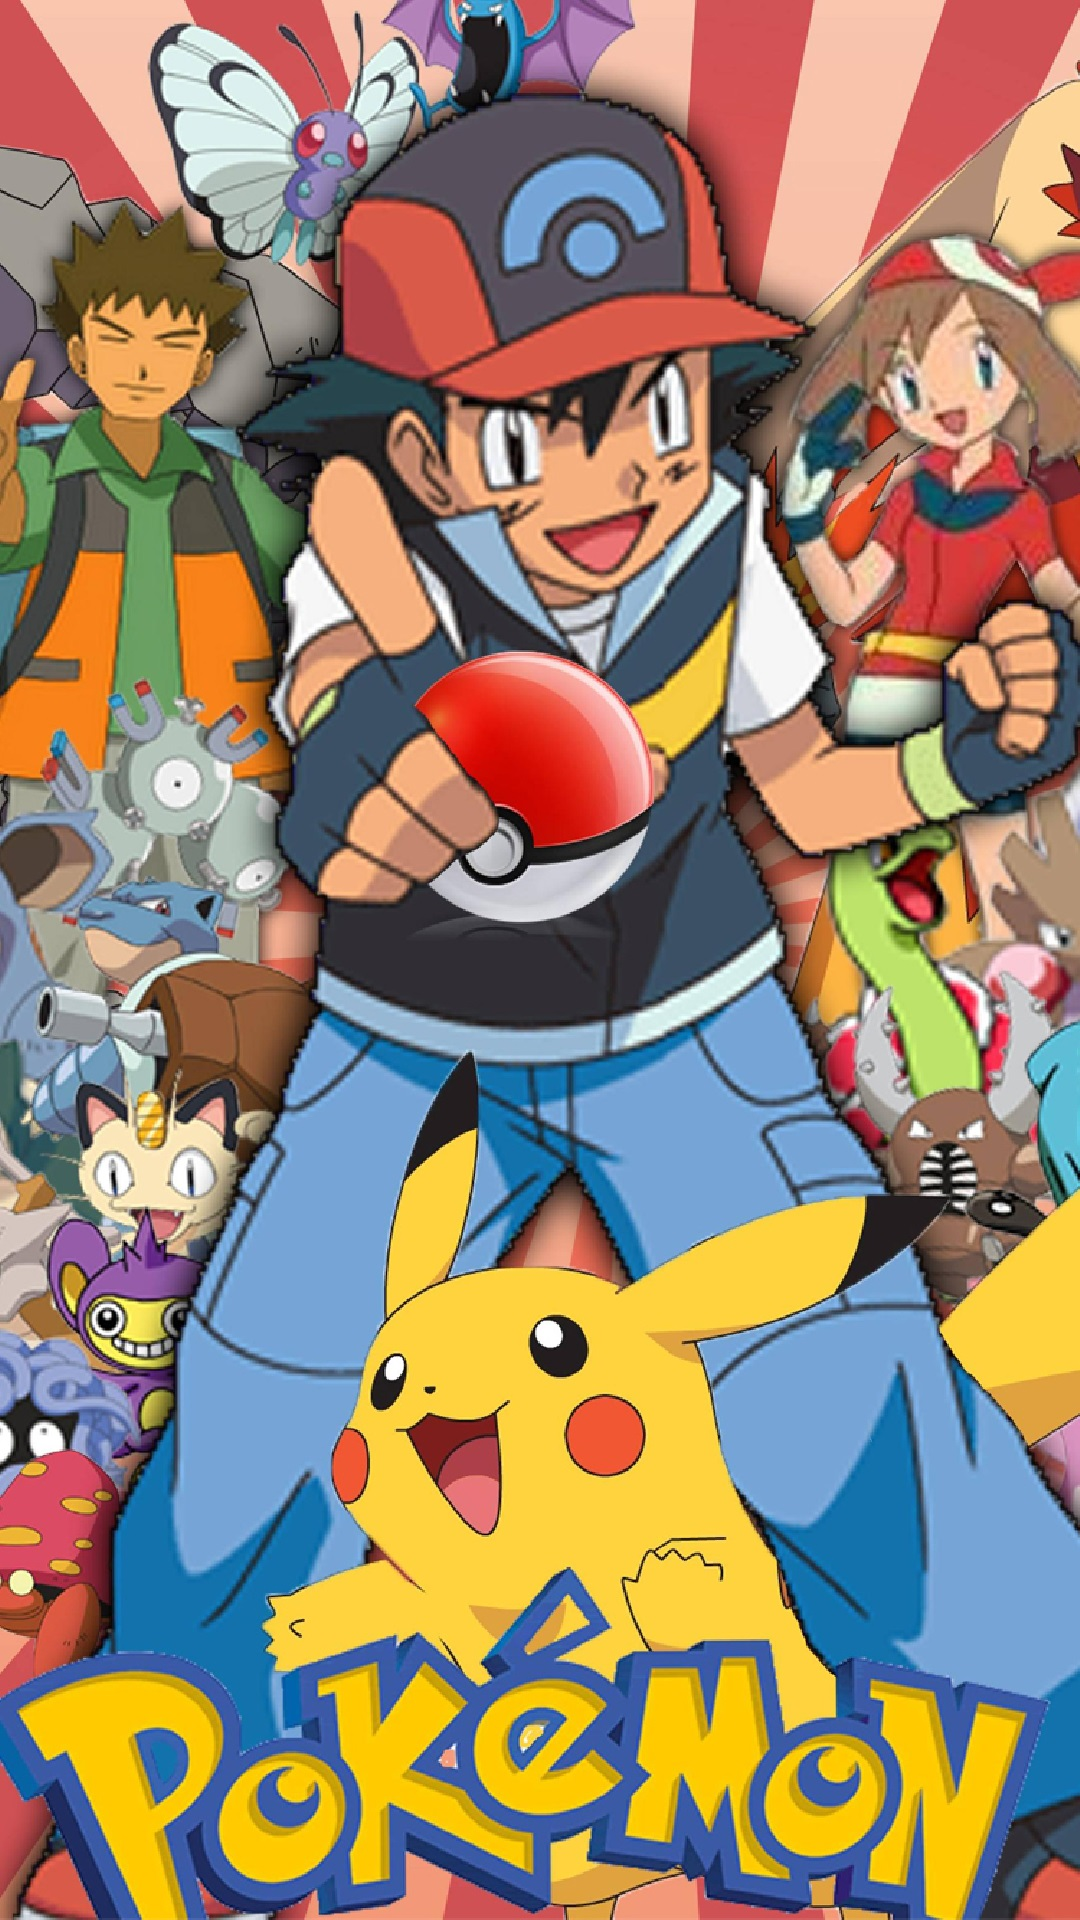 Pokemon Go old and new charecters Iphone hd wallpaper - Wallect